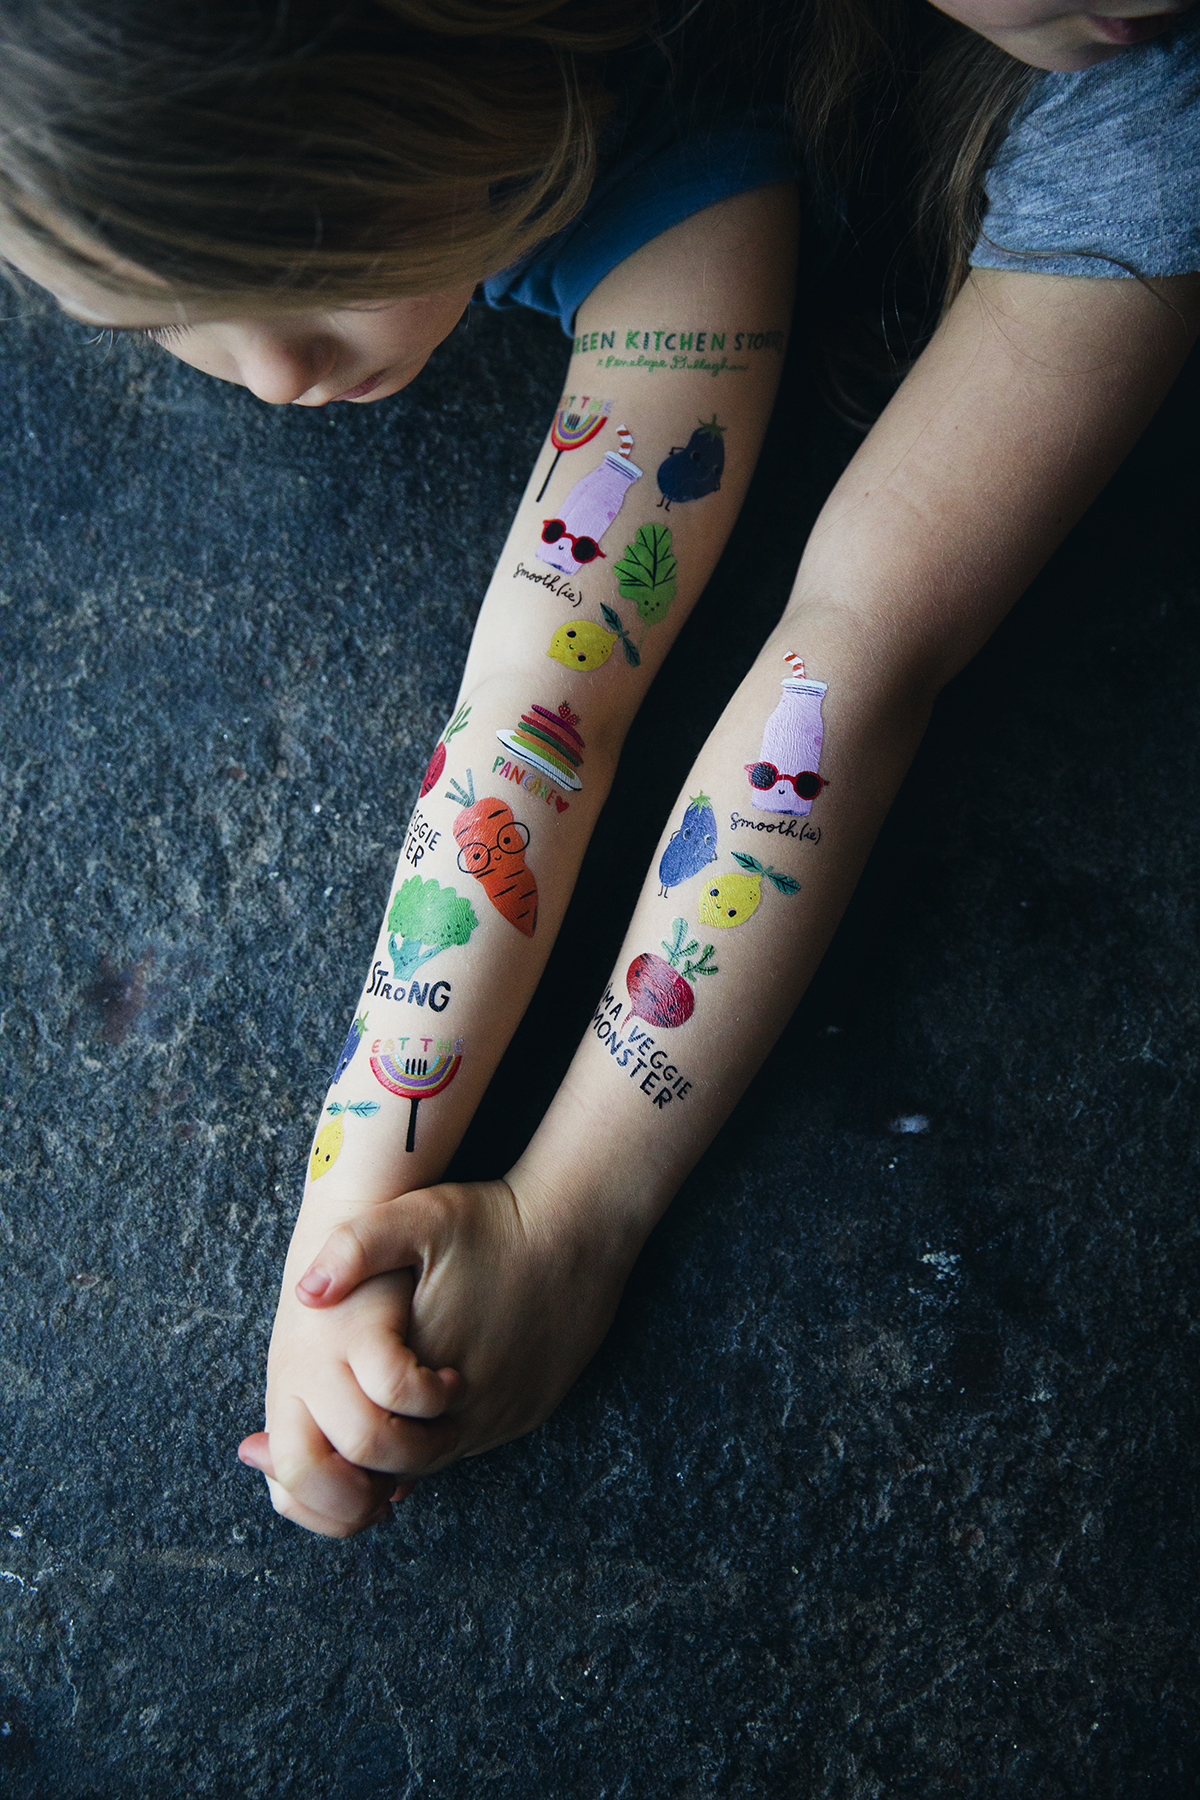 Green Kitchen Stories Temporary Tattoos Penelope Dullaghan